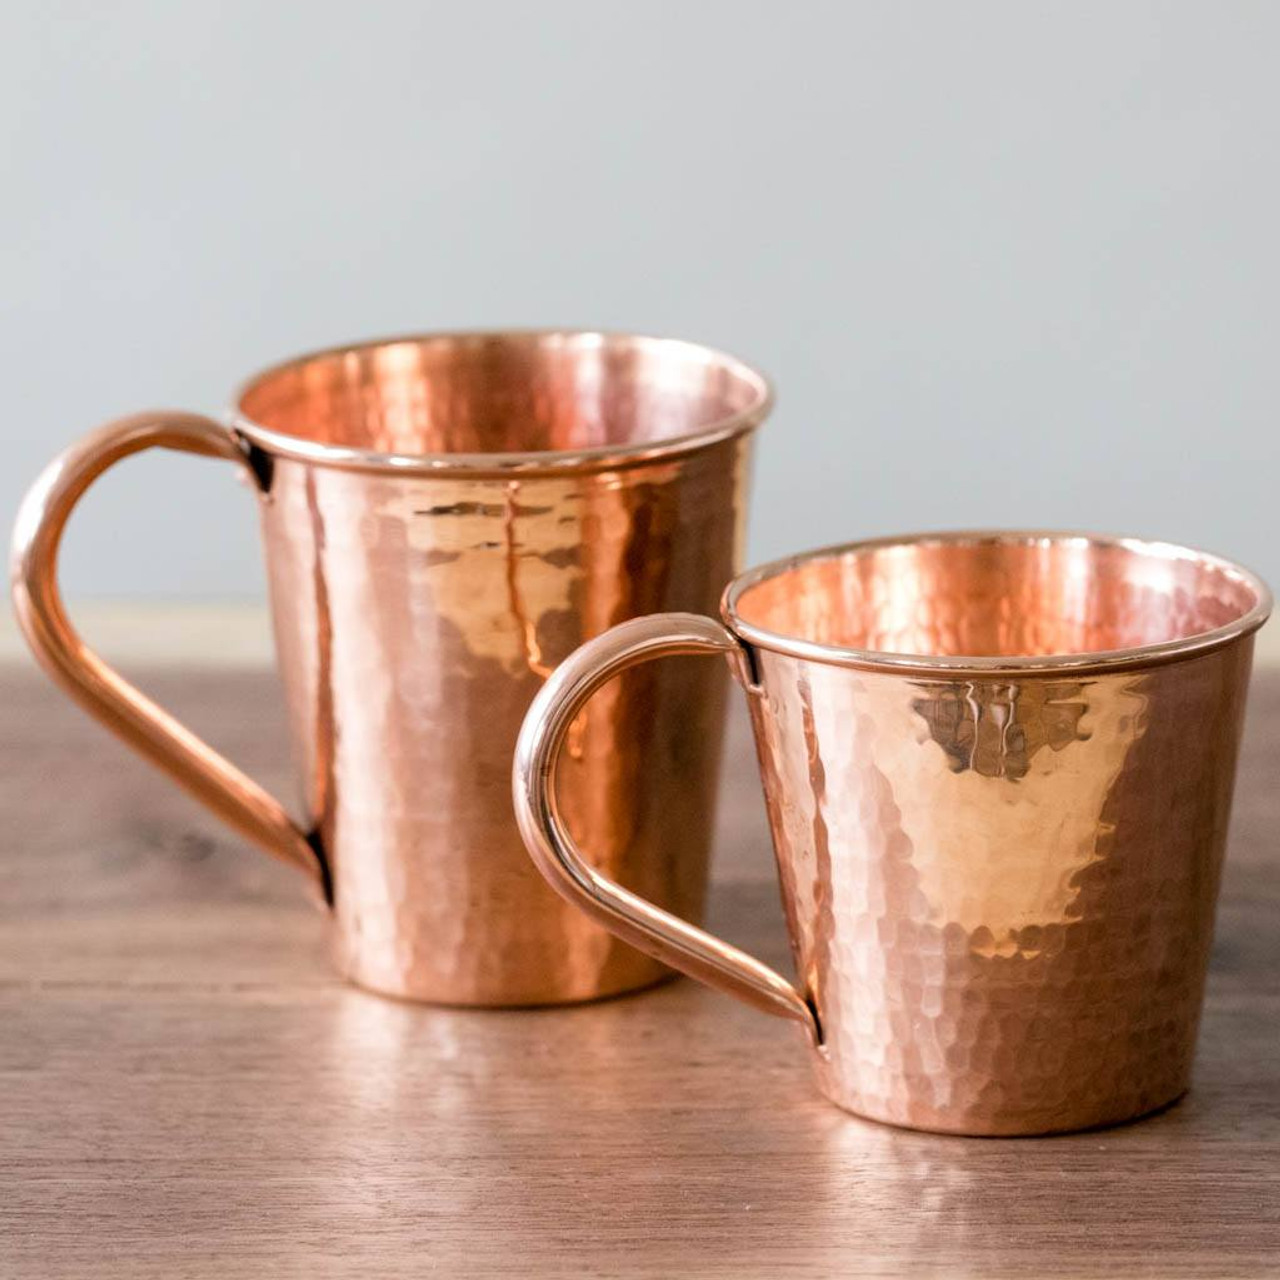 Artisan Crafted Hammered Copper Moscow Mule Mugs By Sertodo Copper Nicole Rhea